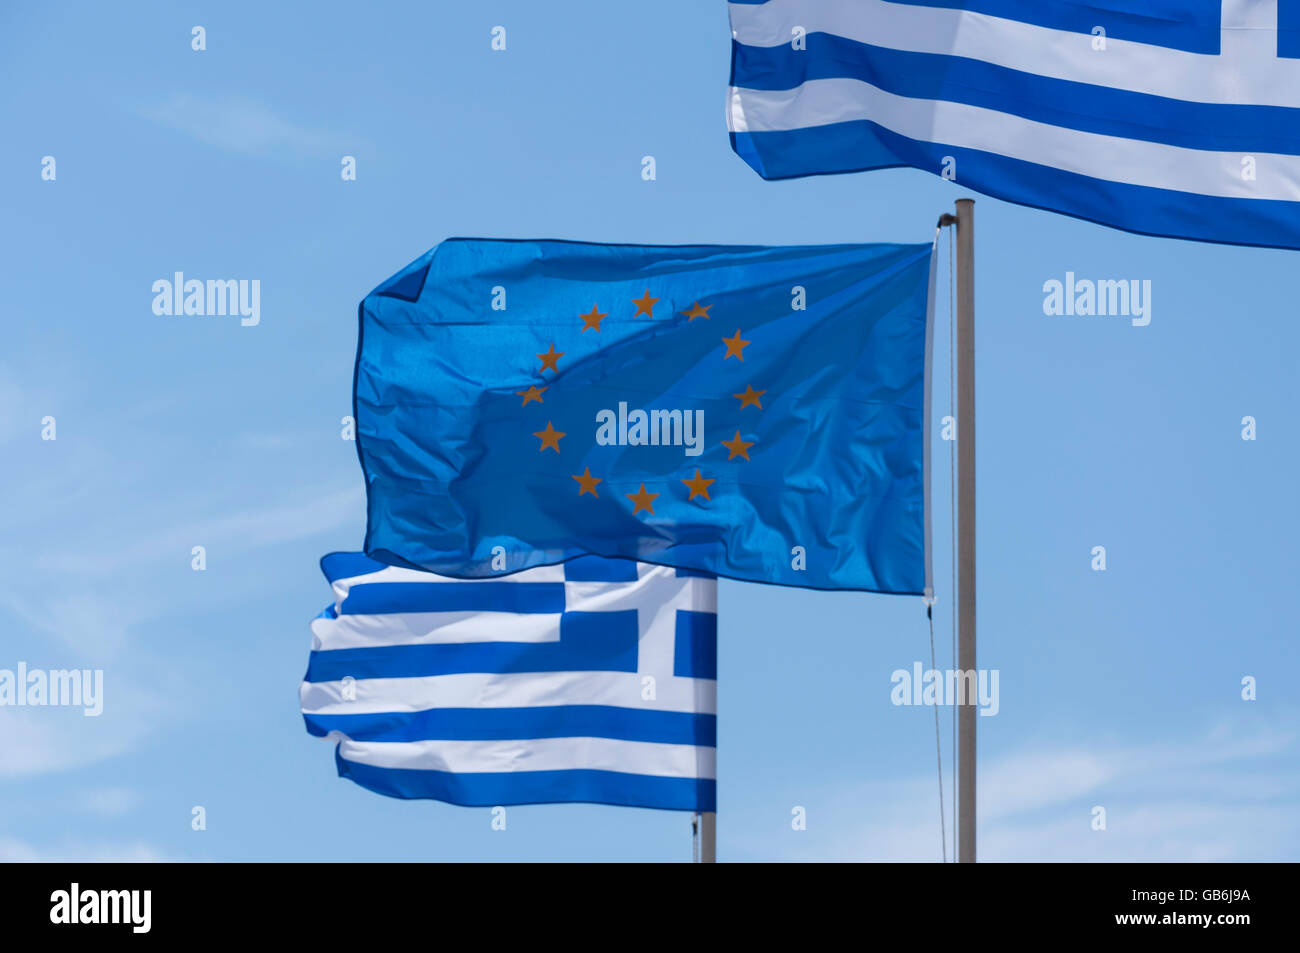 The European flag flying with Greek flags, Kefalos, Kos (Cos), The Dodecanese, South Aegean Region, Greece - Stock Image